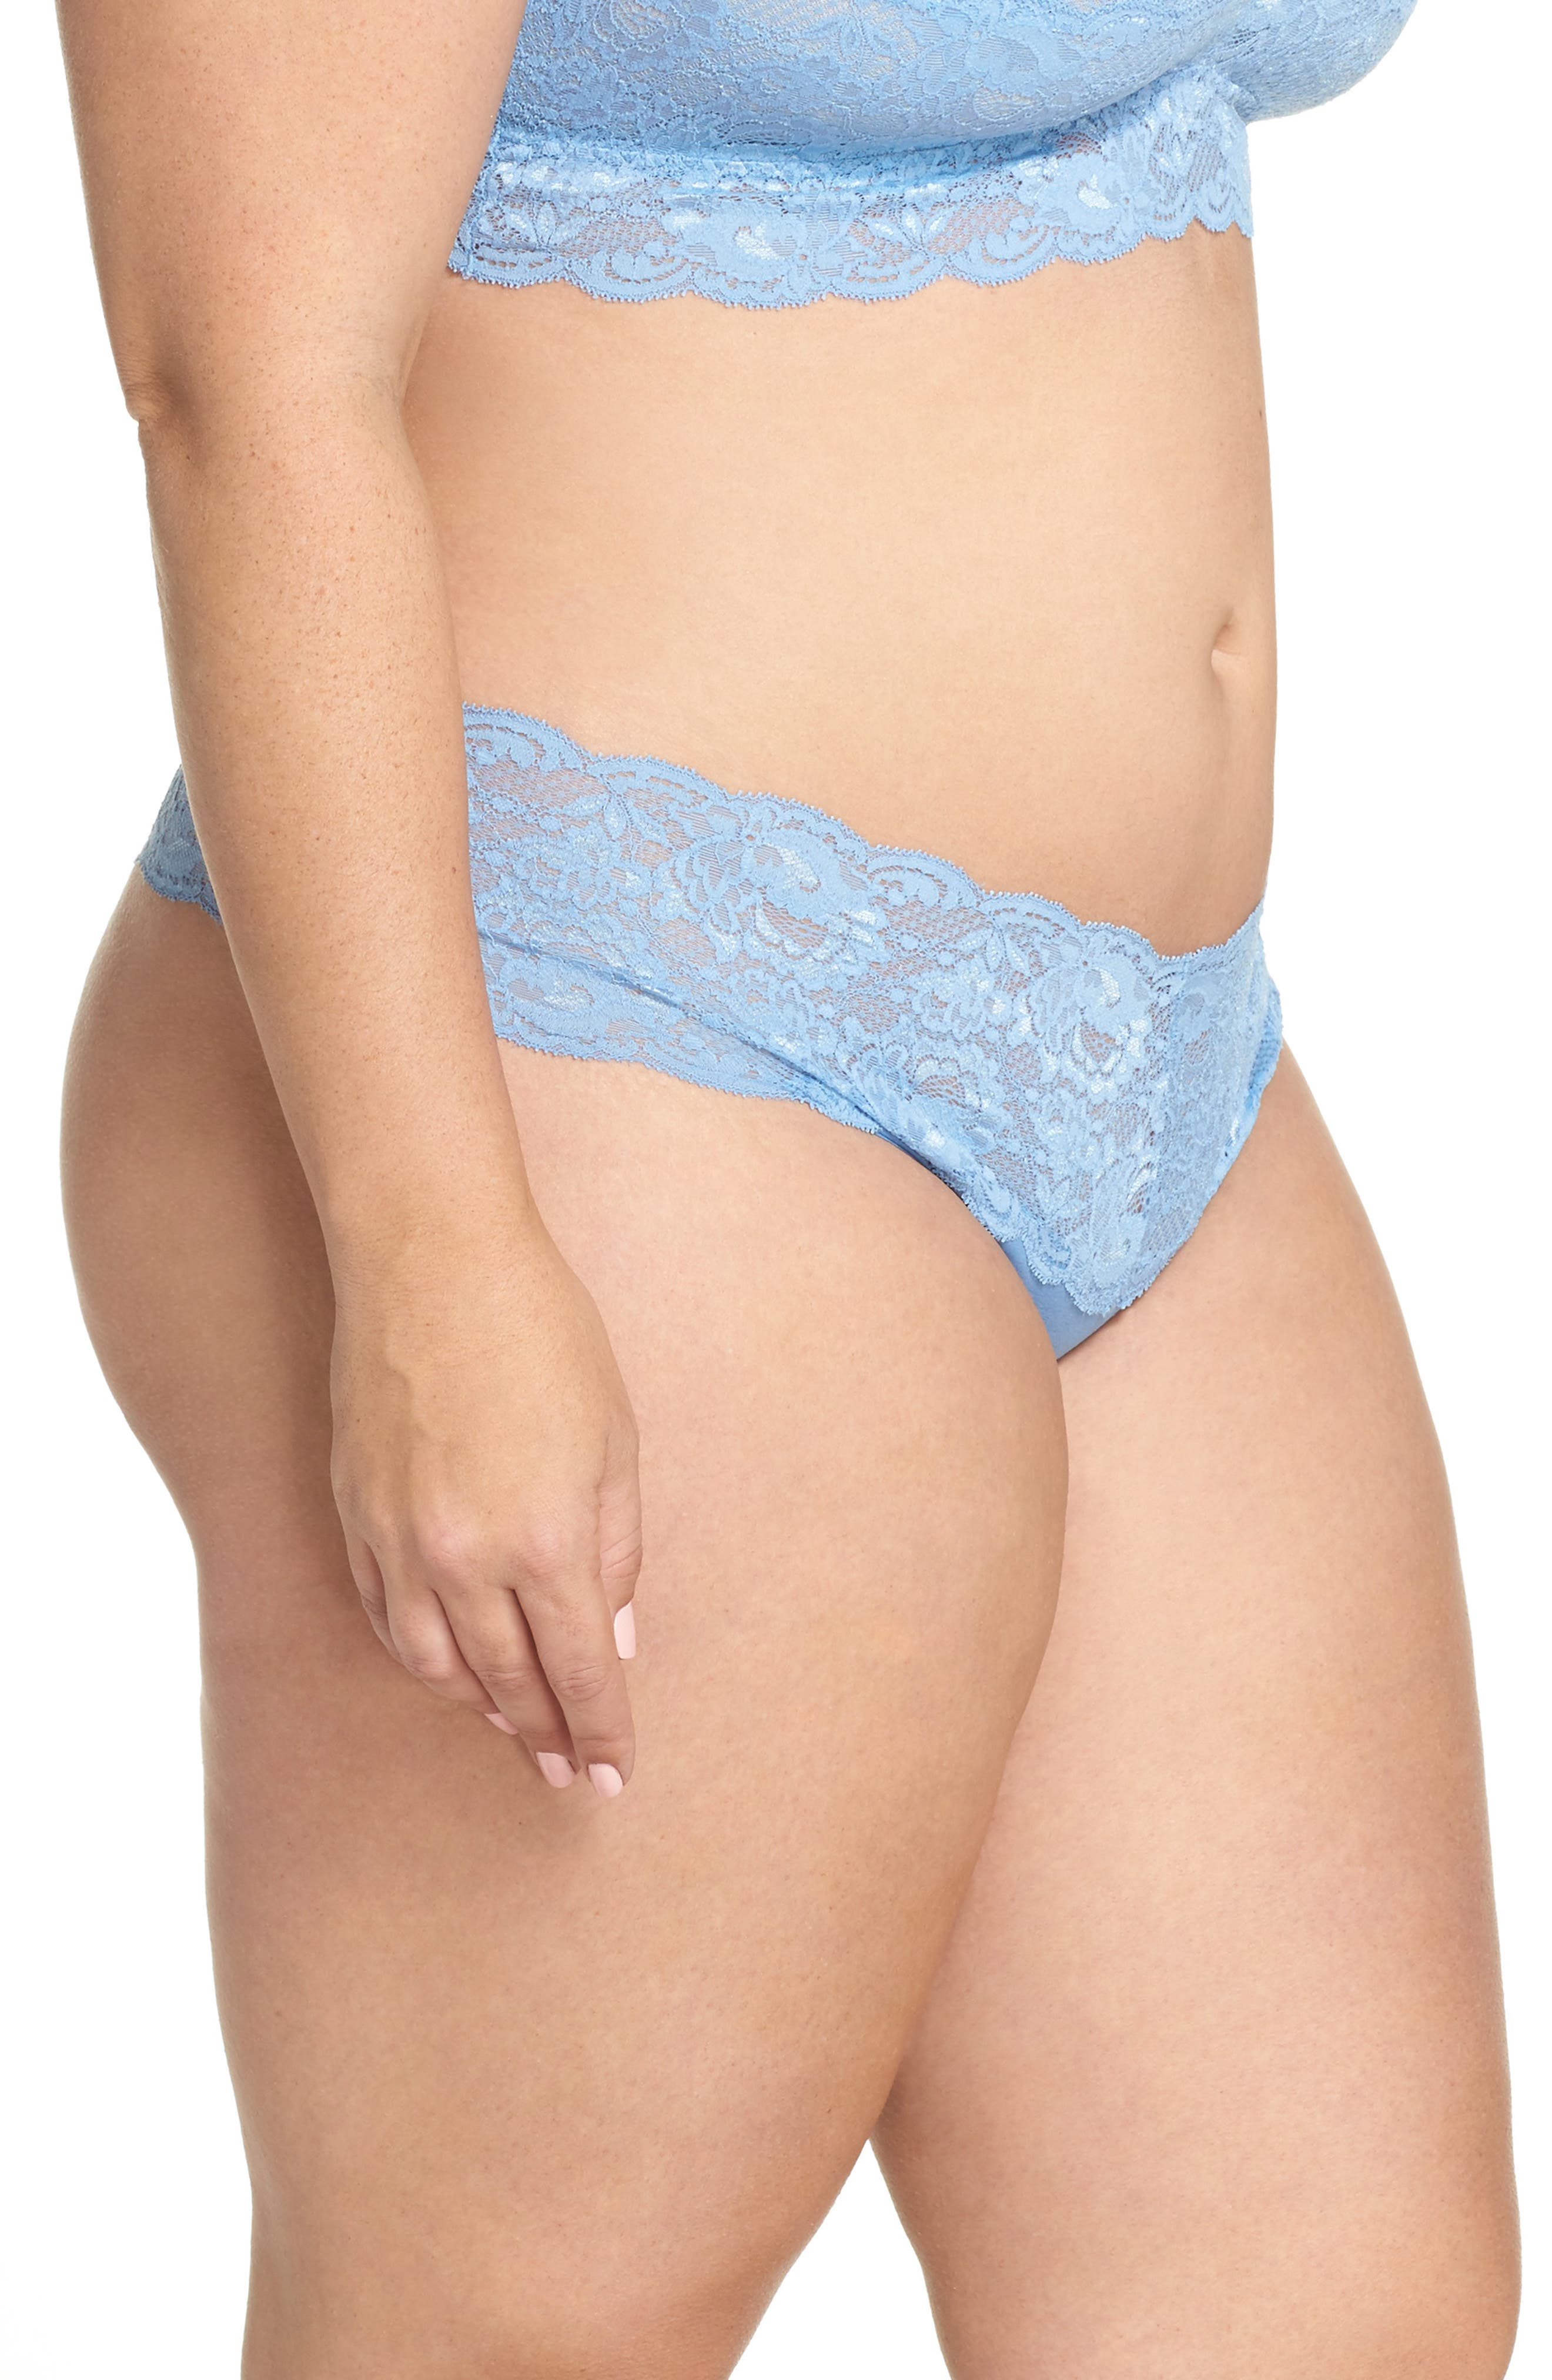 'Never Say Never Lovely' Thong,                             Alternate thumbnail 3, color,                             Jewel Blue